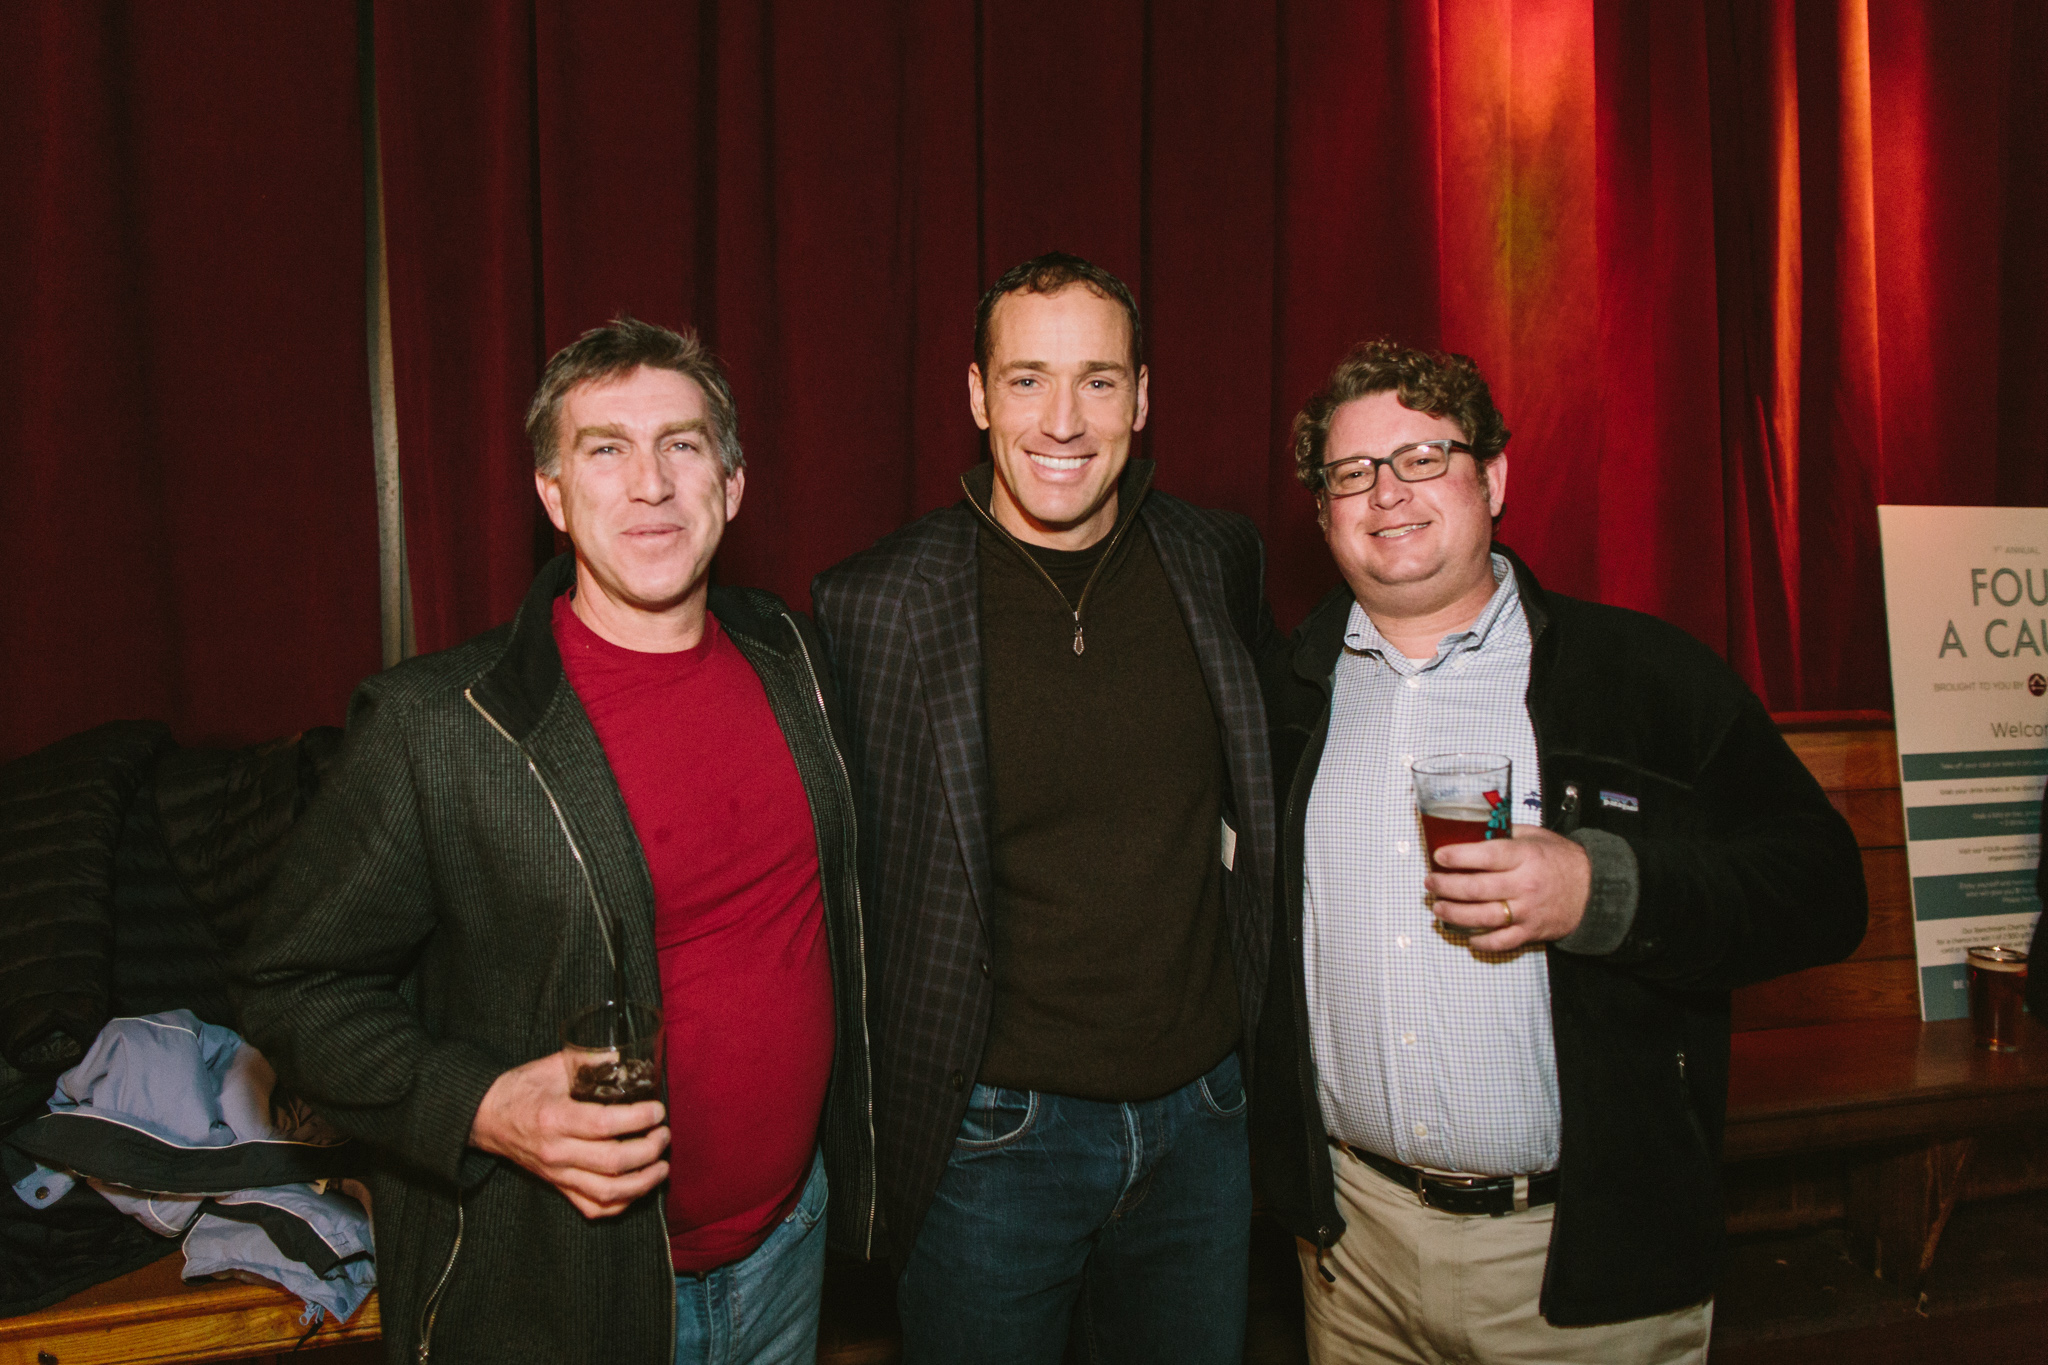 Benchmark_Holiday_Party_Event_Candids-018.jpg